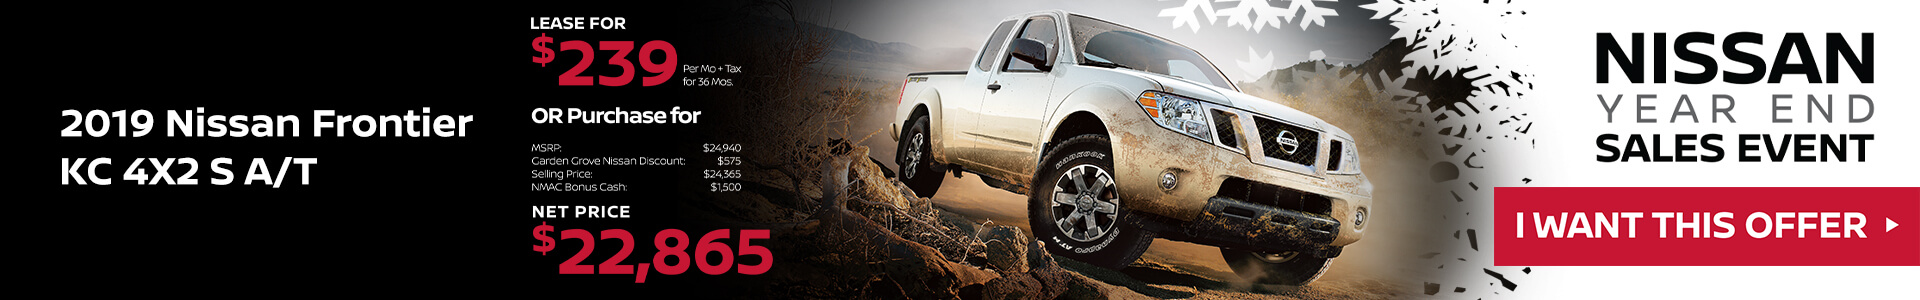 2019 Nissan Frontier Lease for $239